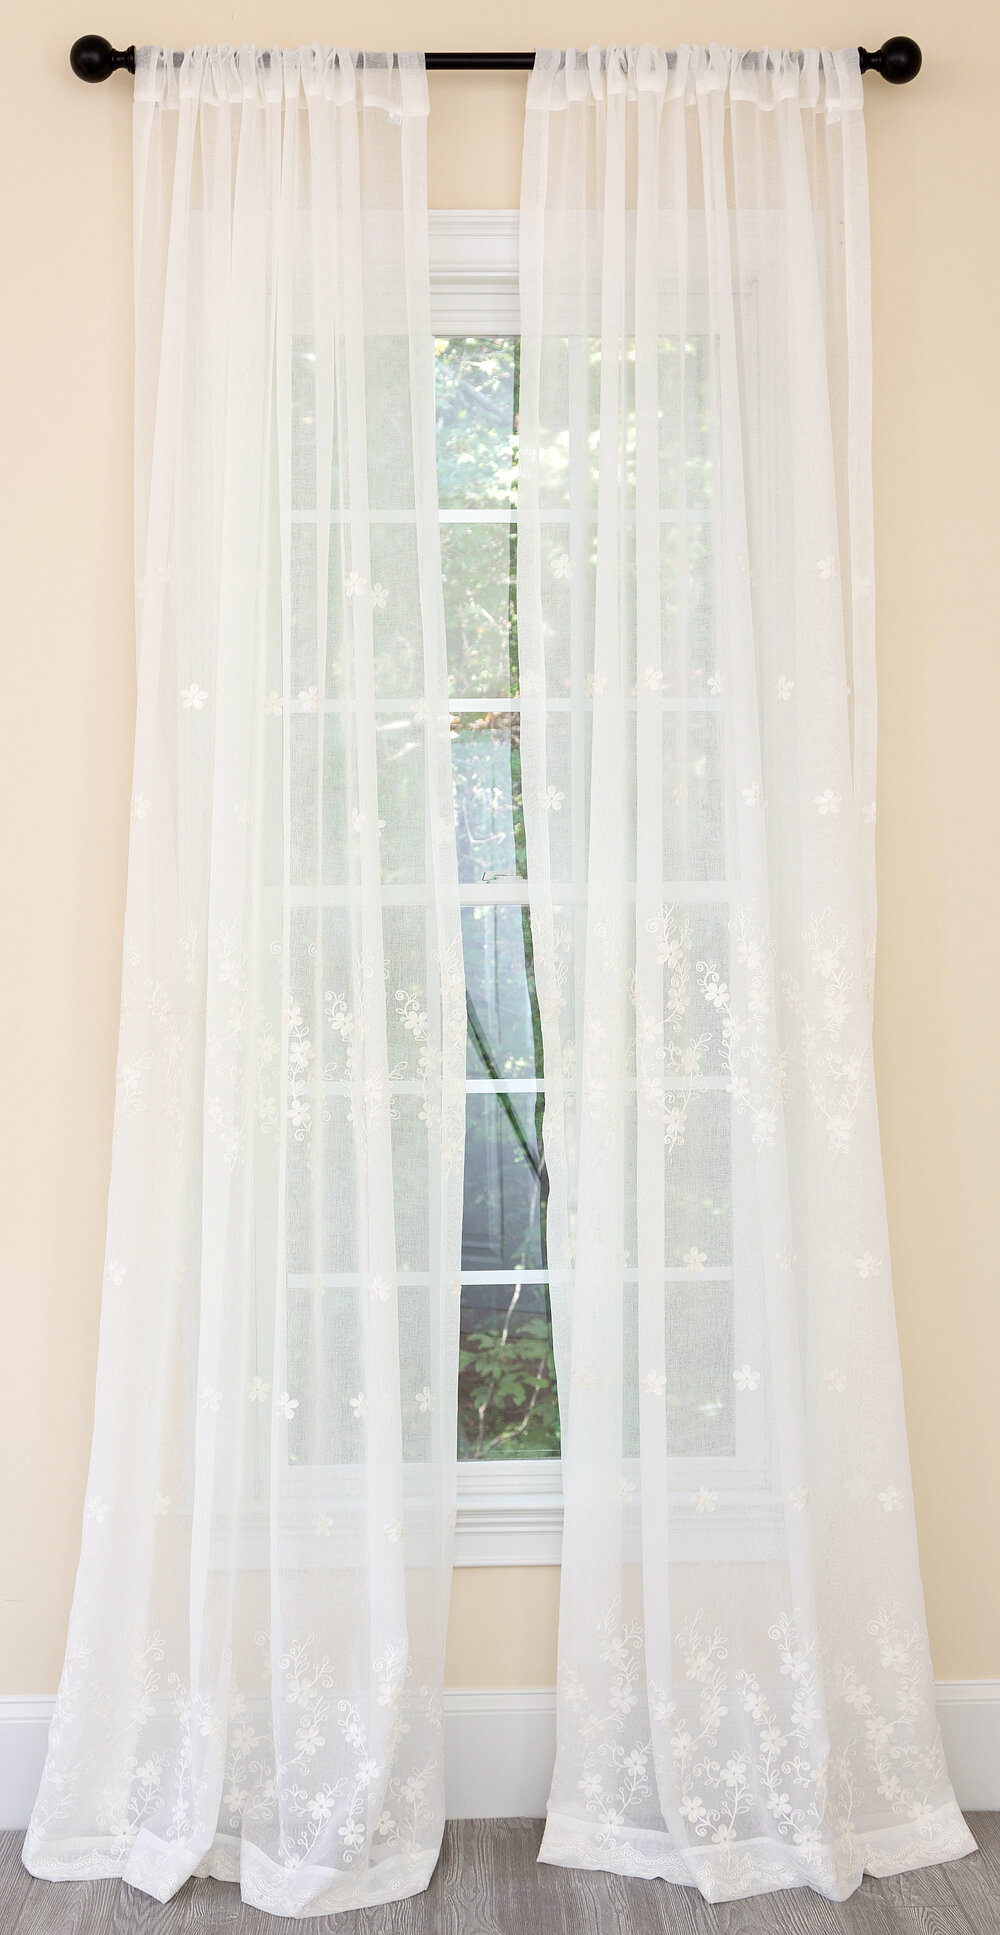 Boothe Blossom Embroidered Floral Sheer Rod Pocket Single Curtain Panel With Kida Embroidered Sheer Curtain Panels (View 18 of 20)